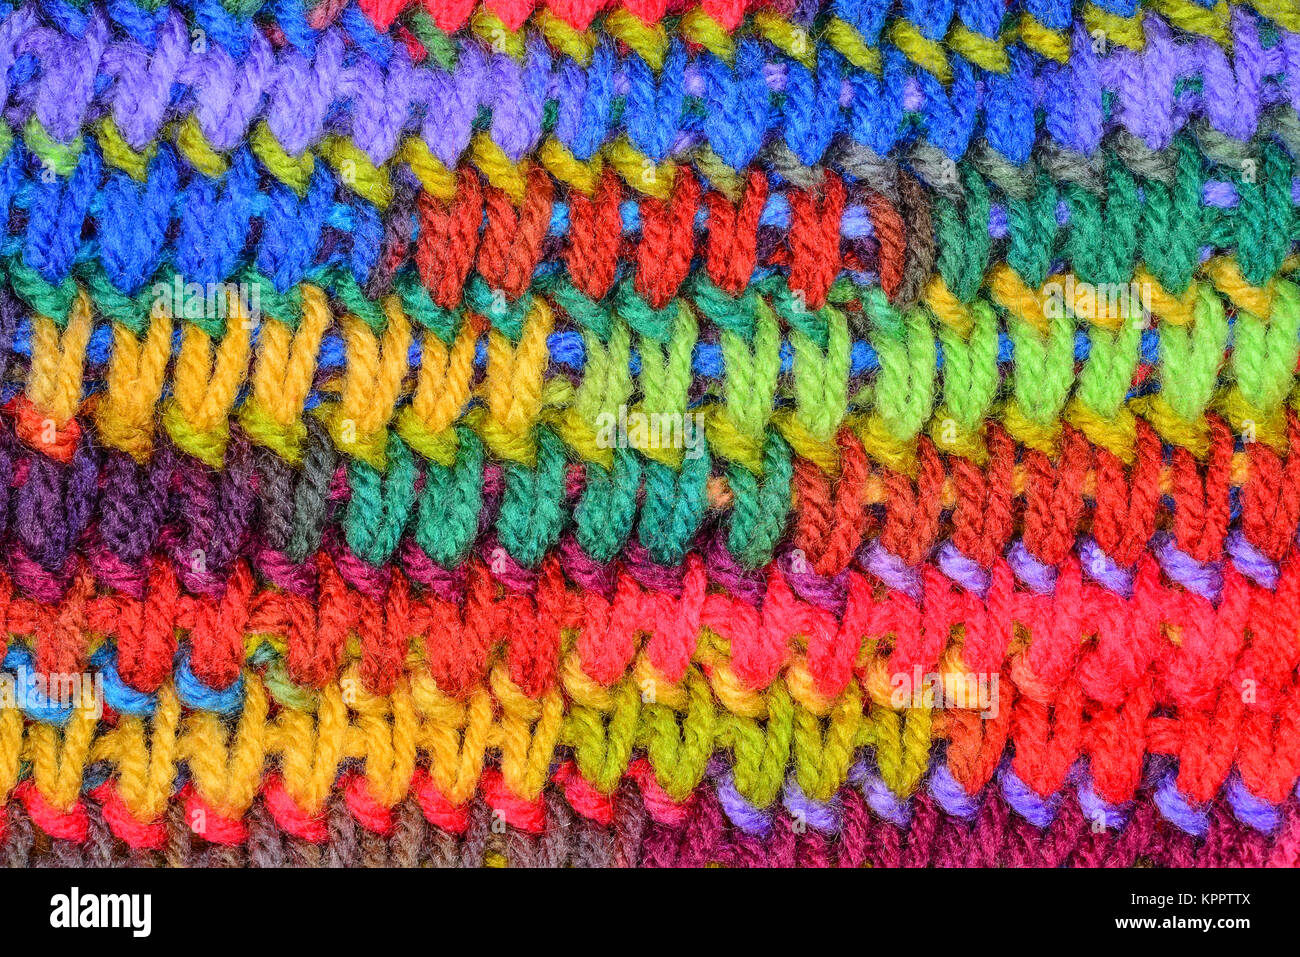 Muted colorful or colourful knitting stitch background.knit - Stock Image